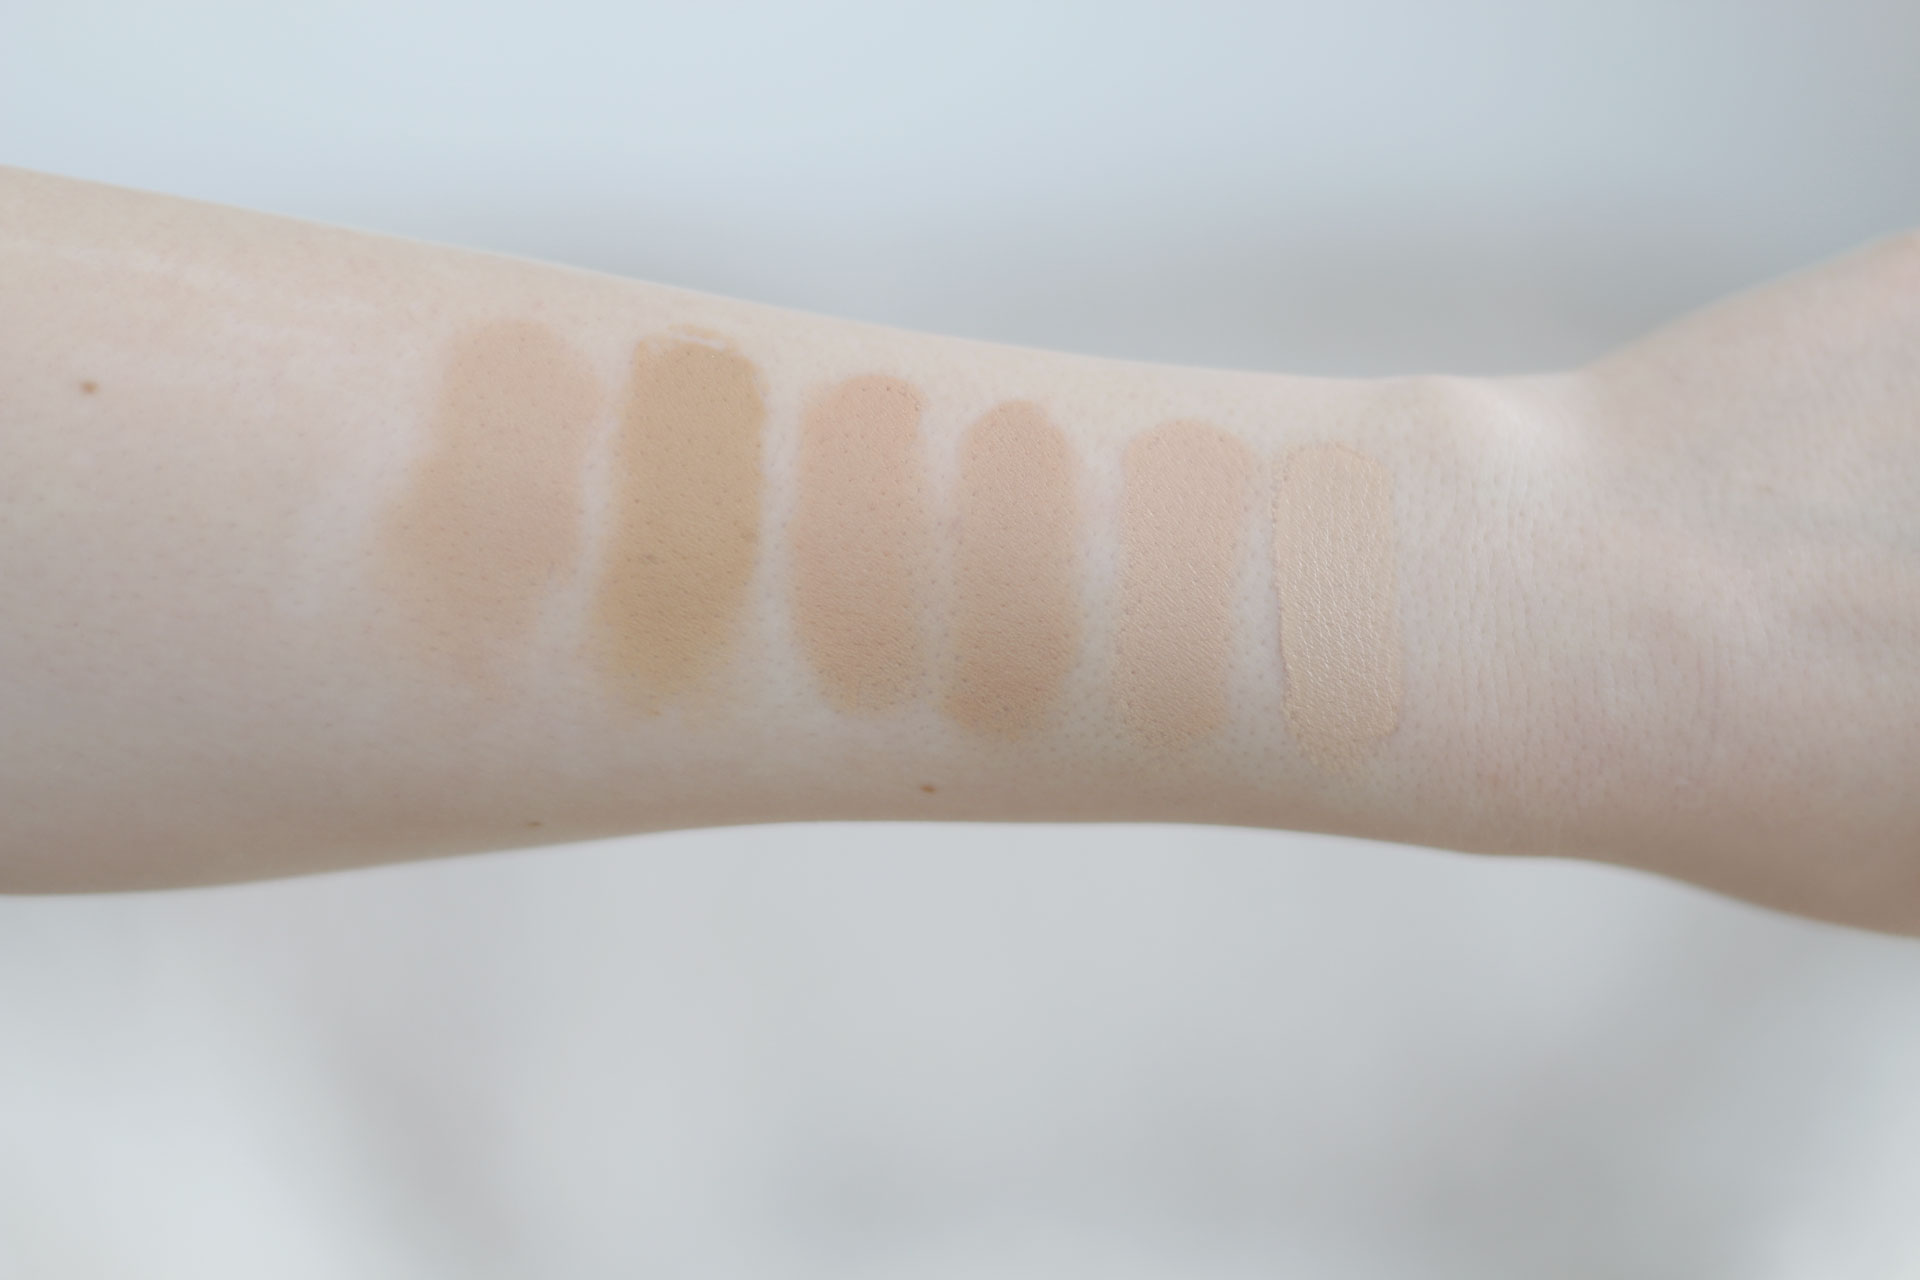 denisasimam-fitme-matte&poreless-foundation-maybelline-swatches